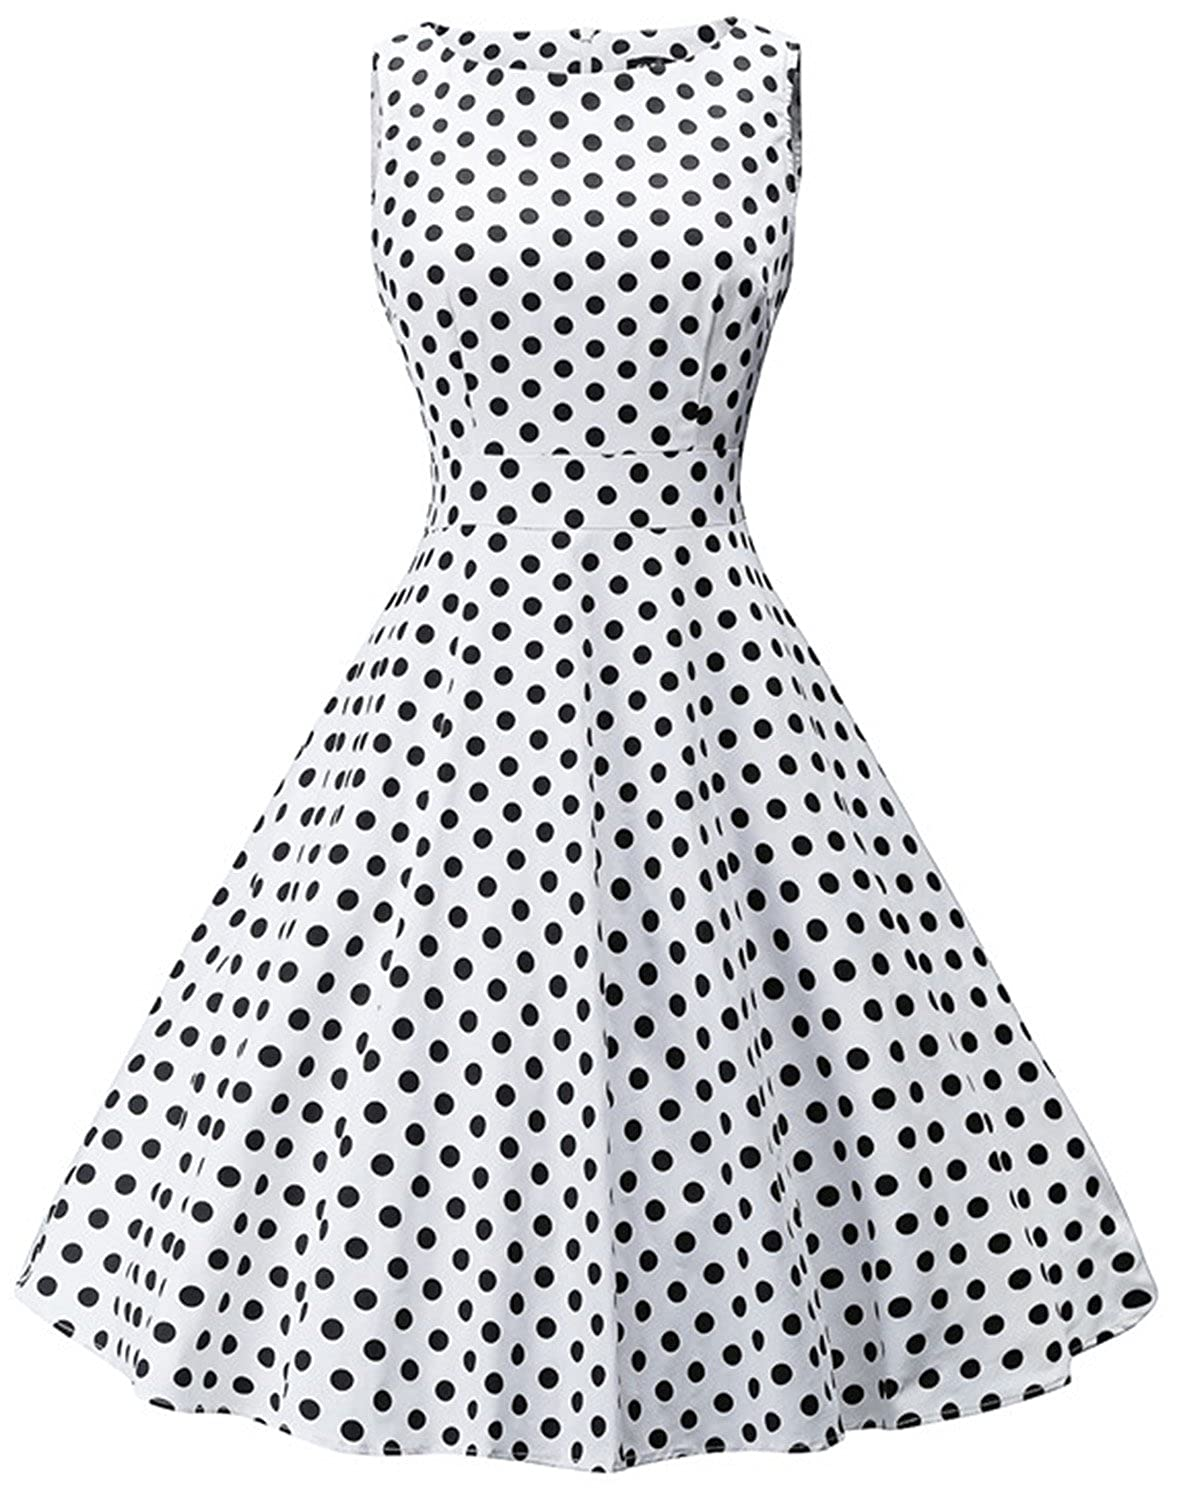 23337cf676a7 Features: Boatneck; Sleeveless; Polka Dot Print; Knee Length; Concealed  Zipper at Back; Fit and Flare Effects. Perfect for Birthday, Party Outfits  , Banquet ...